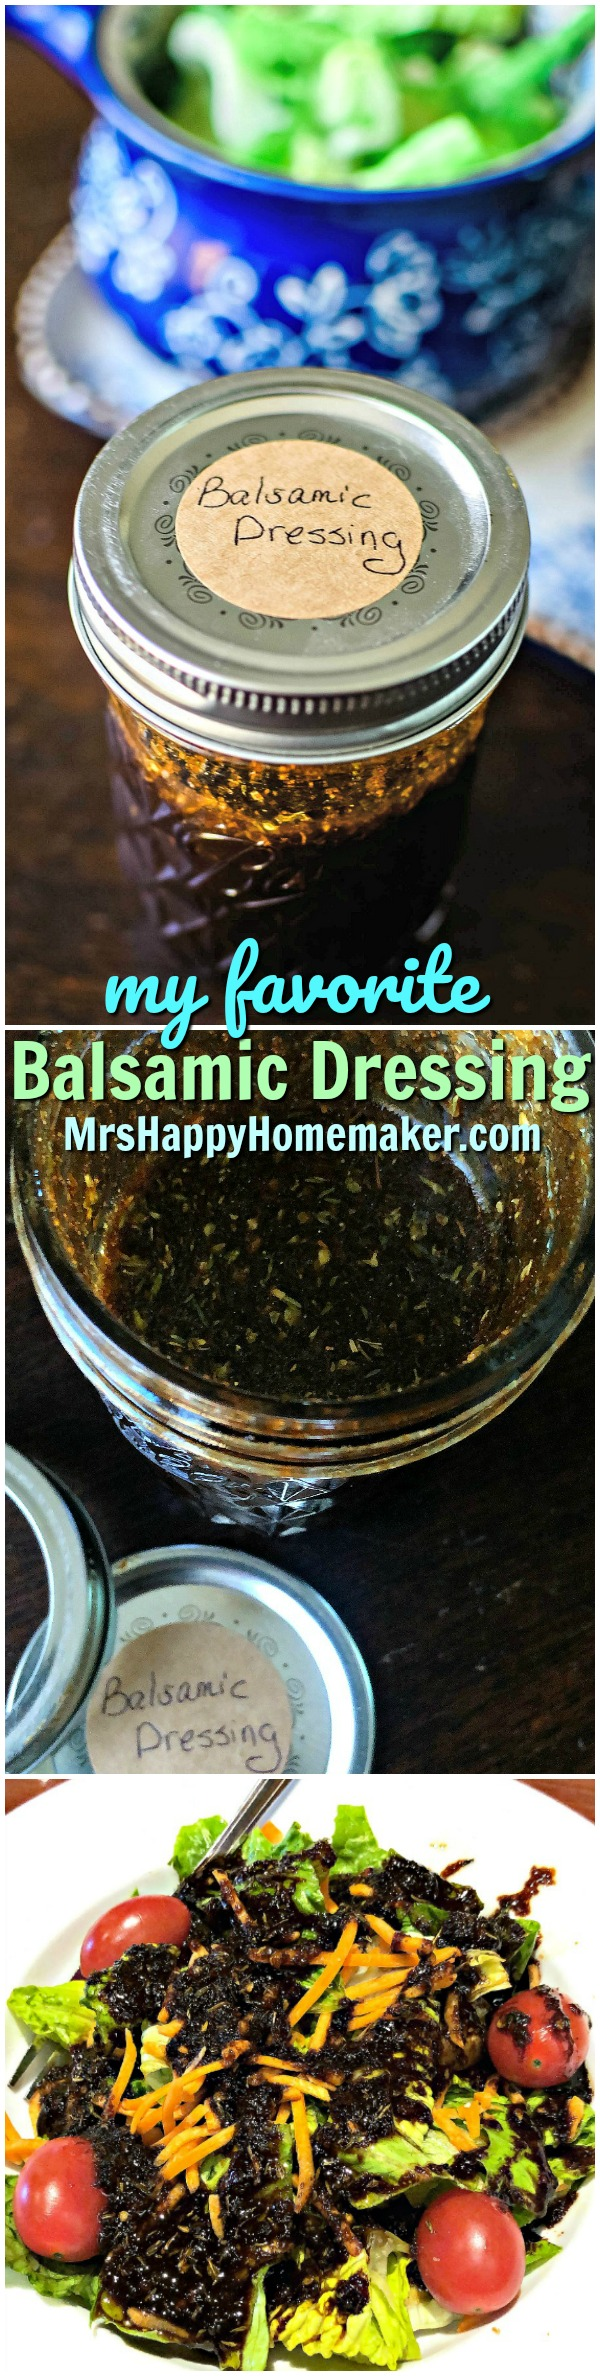 Homemade Balsamic Dressing | MrsHappyHomemaker.com